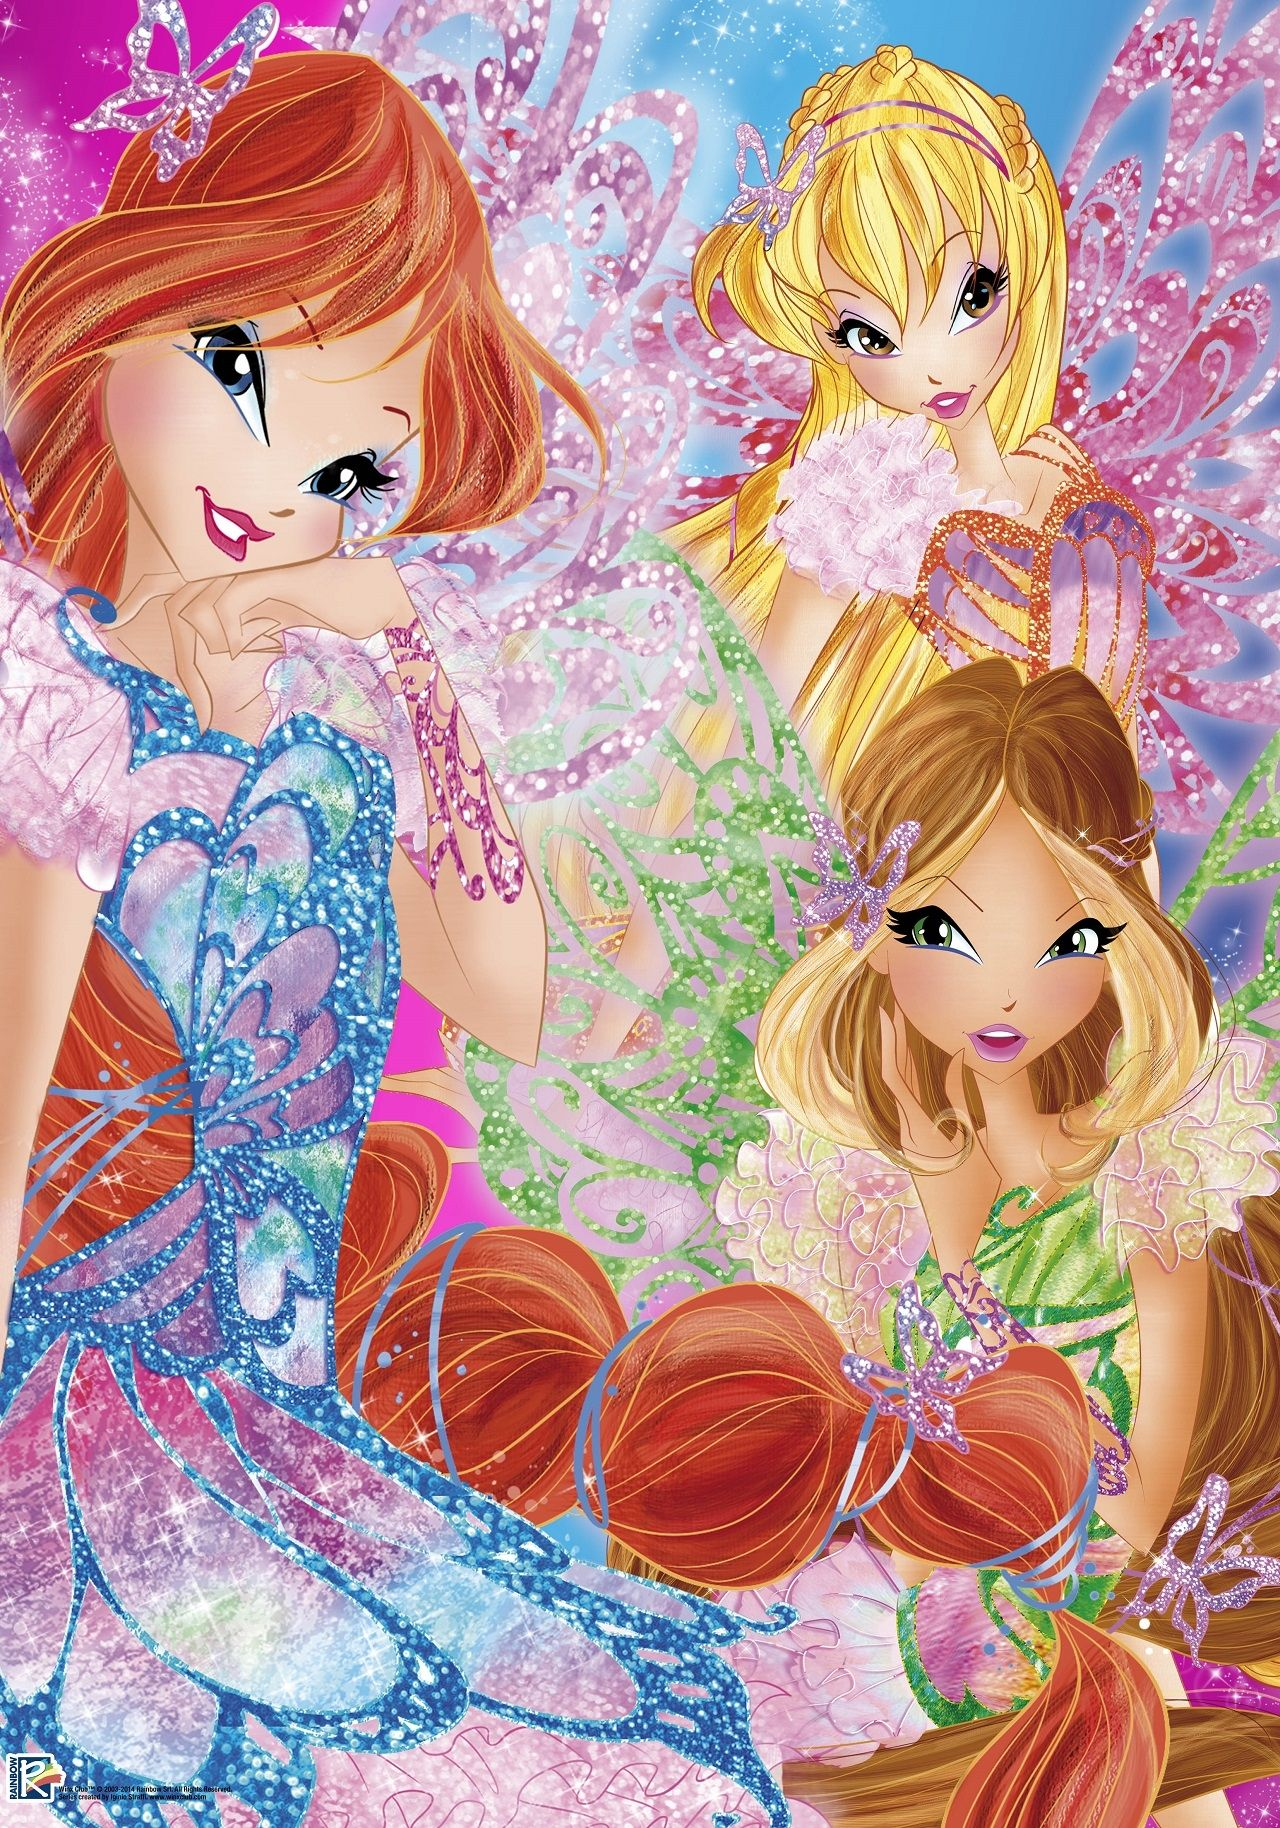 New High Quality Image Of Winx Club Bloom Stella Flora Butterflix In Fairy Couture Style